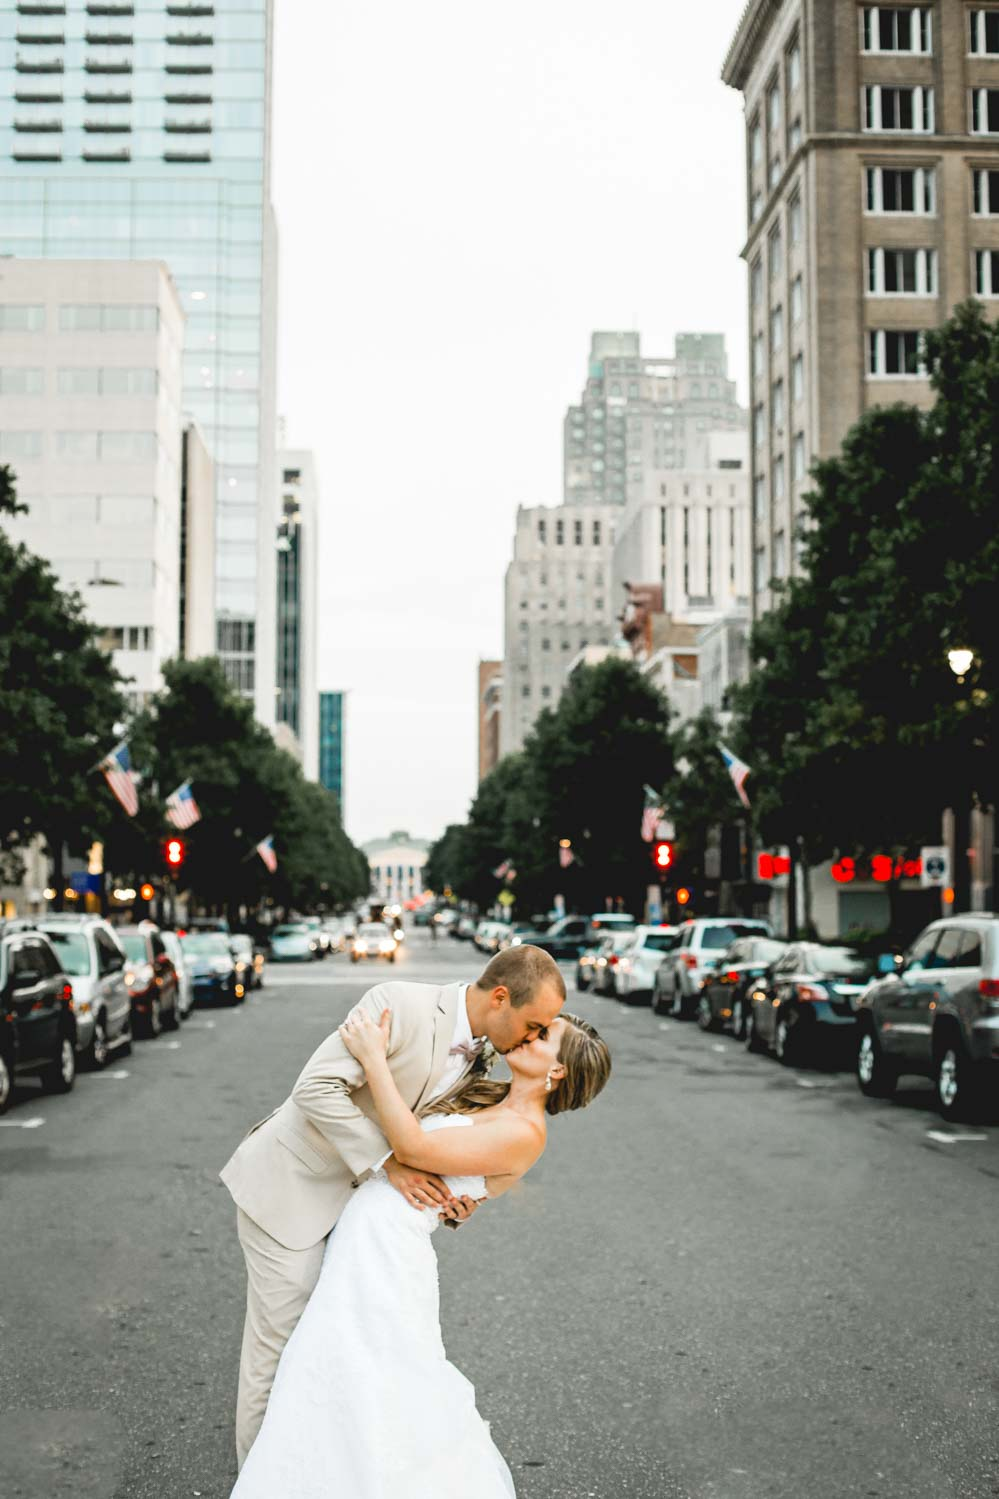 A just married couple kisses in the streets of downtown Raleigh for their wedding photos. Their wedding venue was held at the Stockroom 230 which is in the heart of downtown!